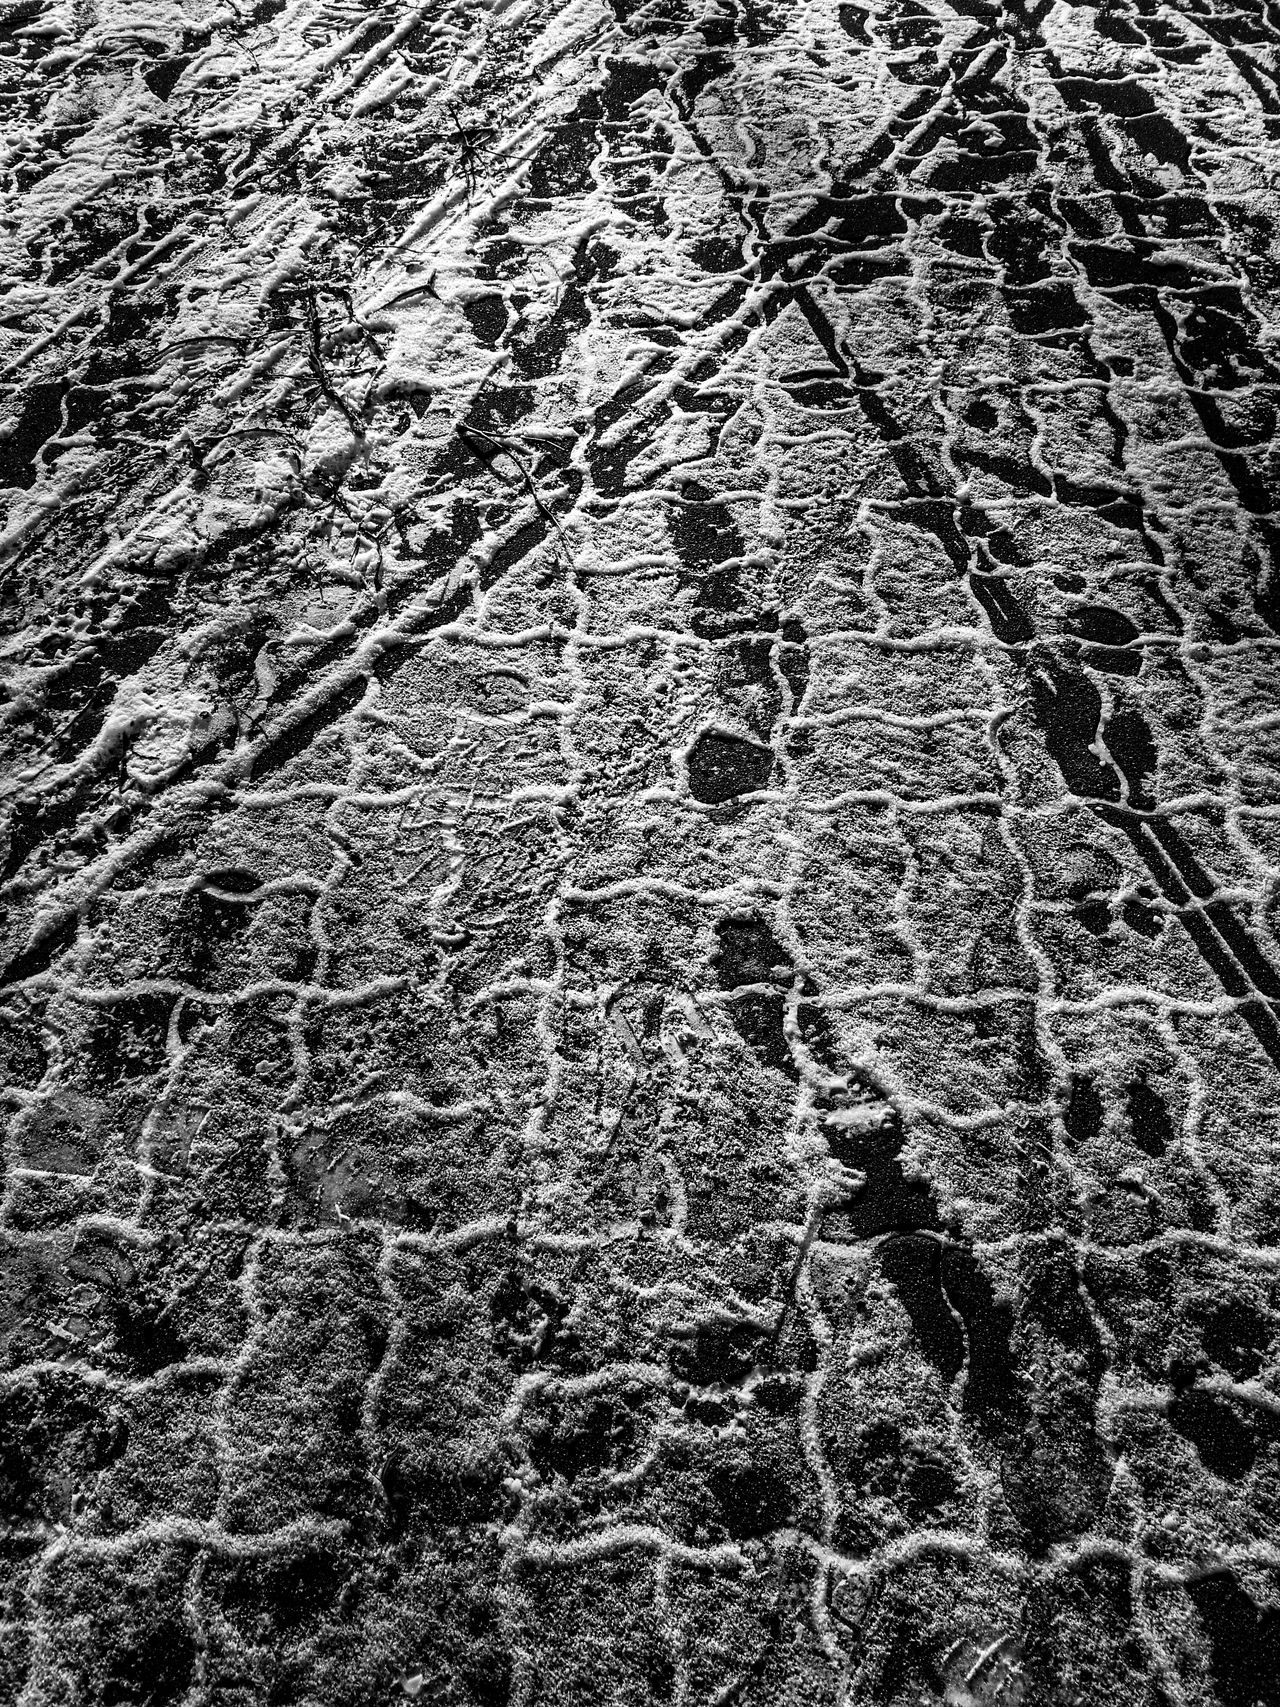 Steps Backgrounds Berlin Black & White Berlin Monochrome Berlin Schwarzweiss Black And White Berlin Day Full Frame High Angle View Monochrome Berlin No People Outdoors Pattern Textured  HuaweiP9 Huaweiphotography Huawei P9 Leica Monochrome Monochrome Photography Black And White Black & White Blackandwhite Photography Schwarzweiß Background Footsteps